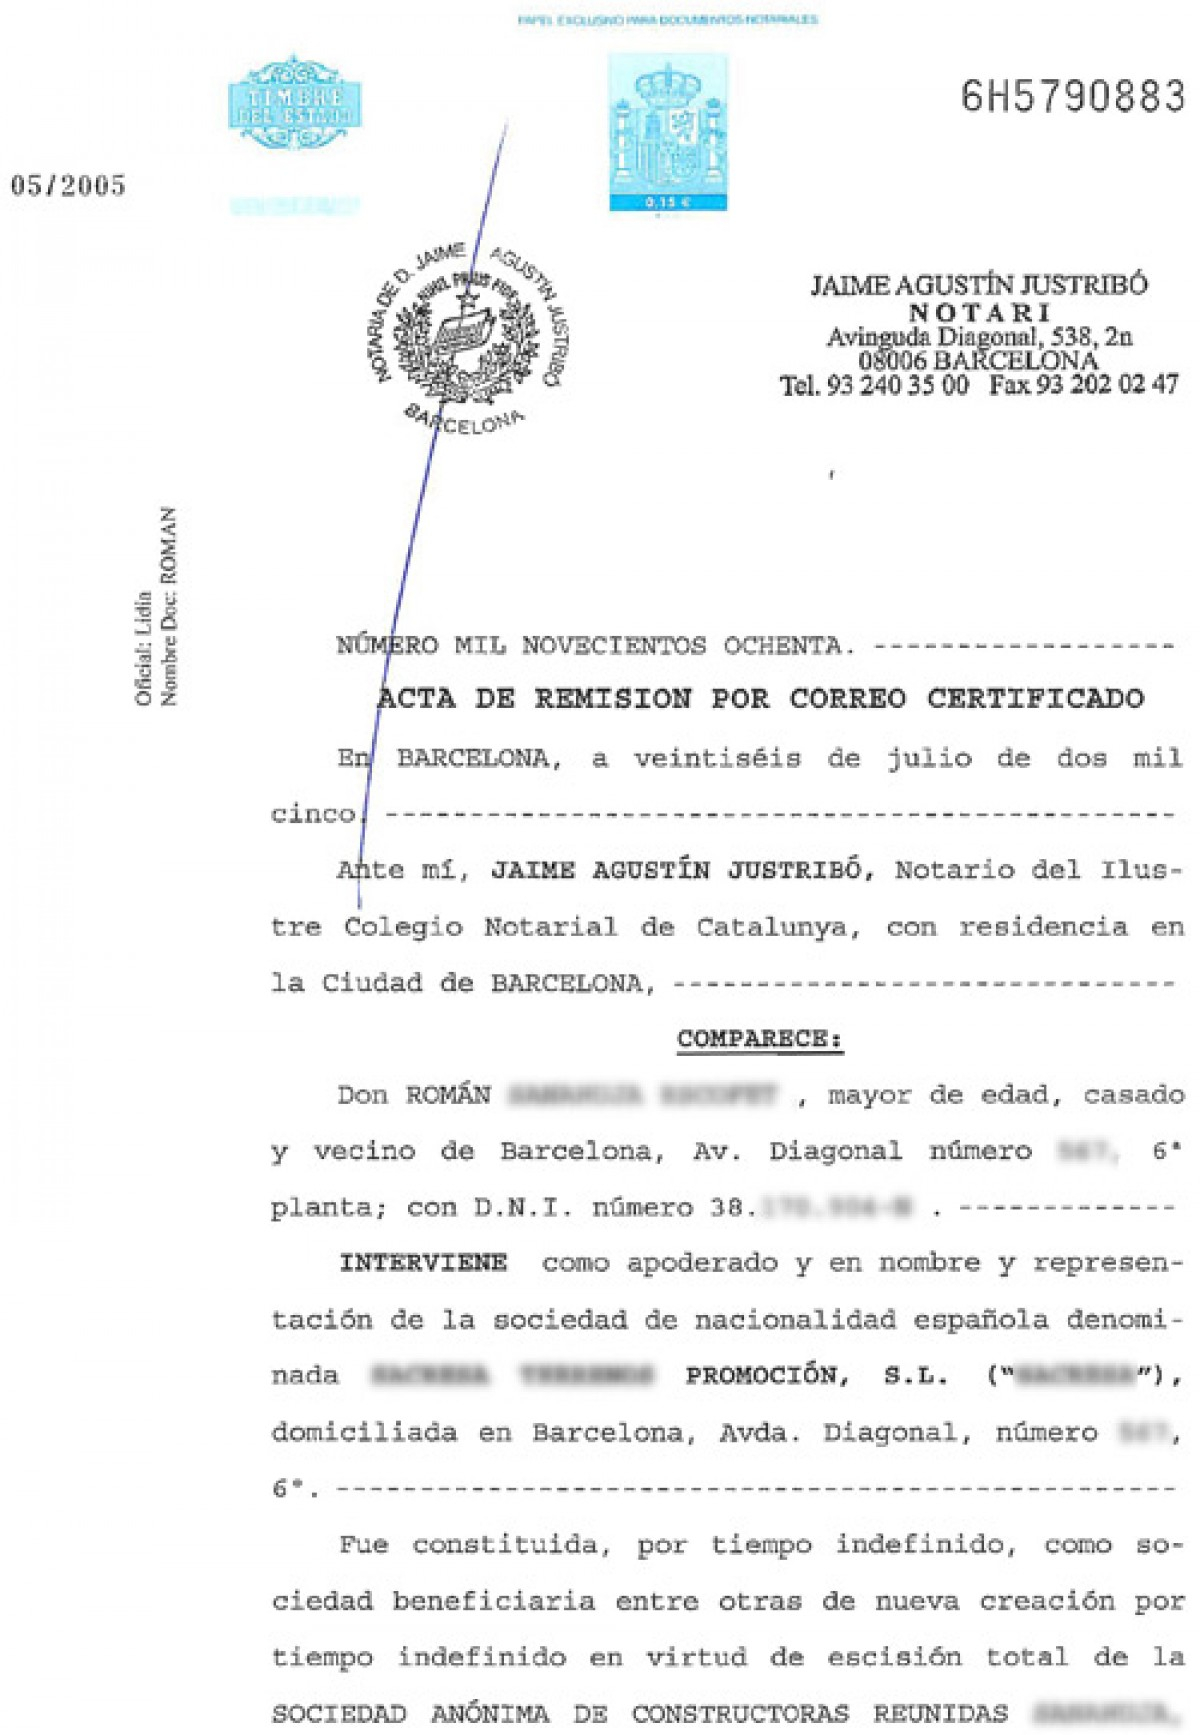 Spanish Power Of Attorney Poderes Explained In Detail